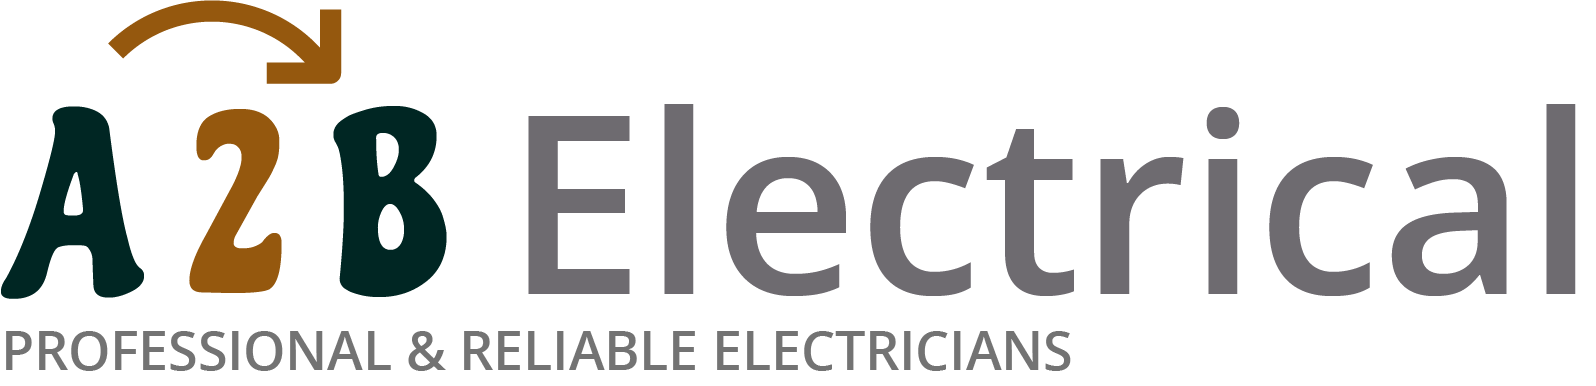 If you have electrical wiring problems in Whitechapel, we can provide an electrician to have a look for you.